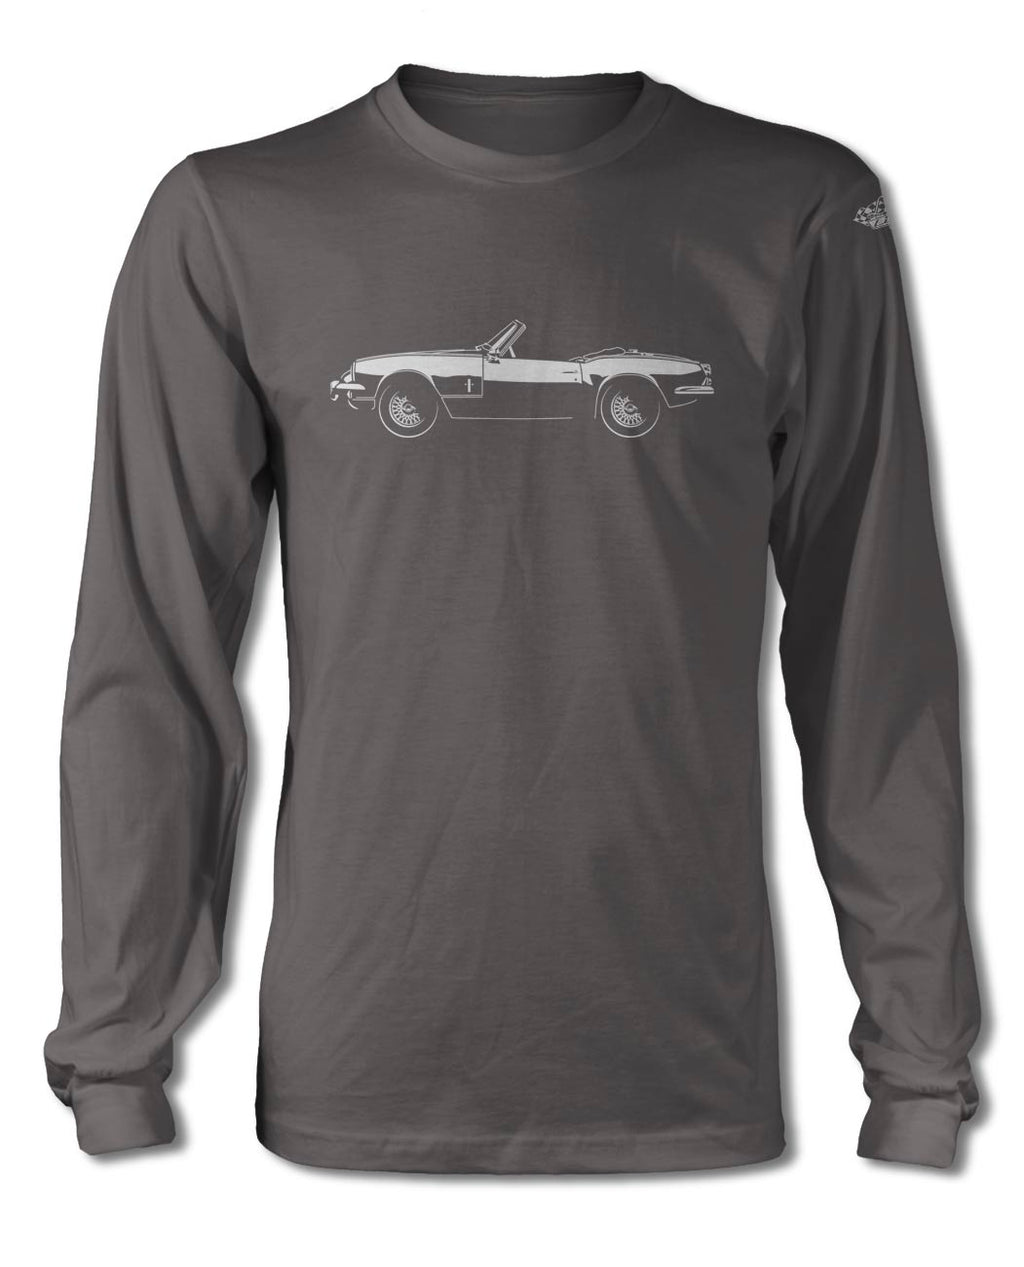 Triumph Spitfire MKIII Convertible T-Shirt - Long Sleeves - Side View